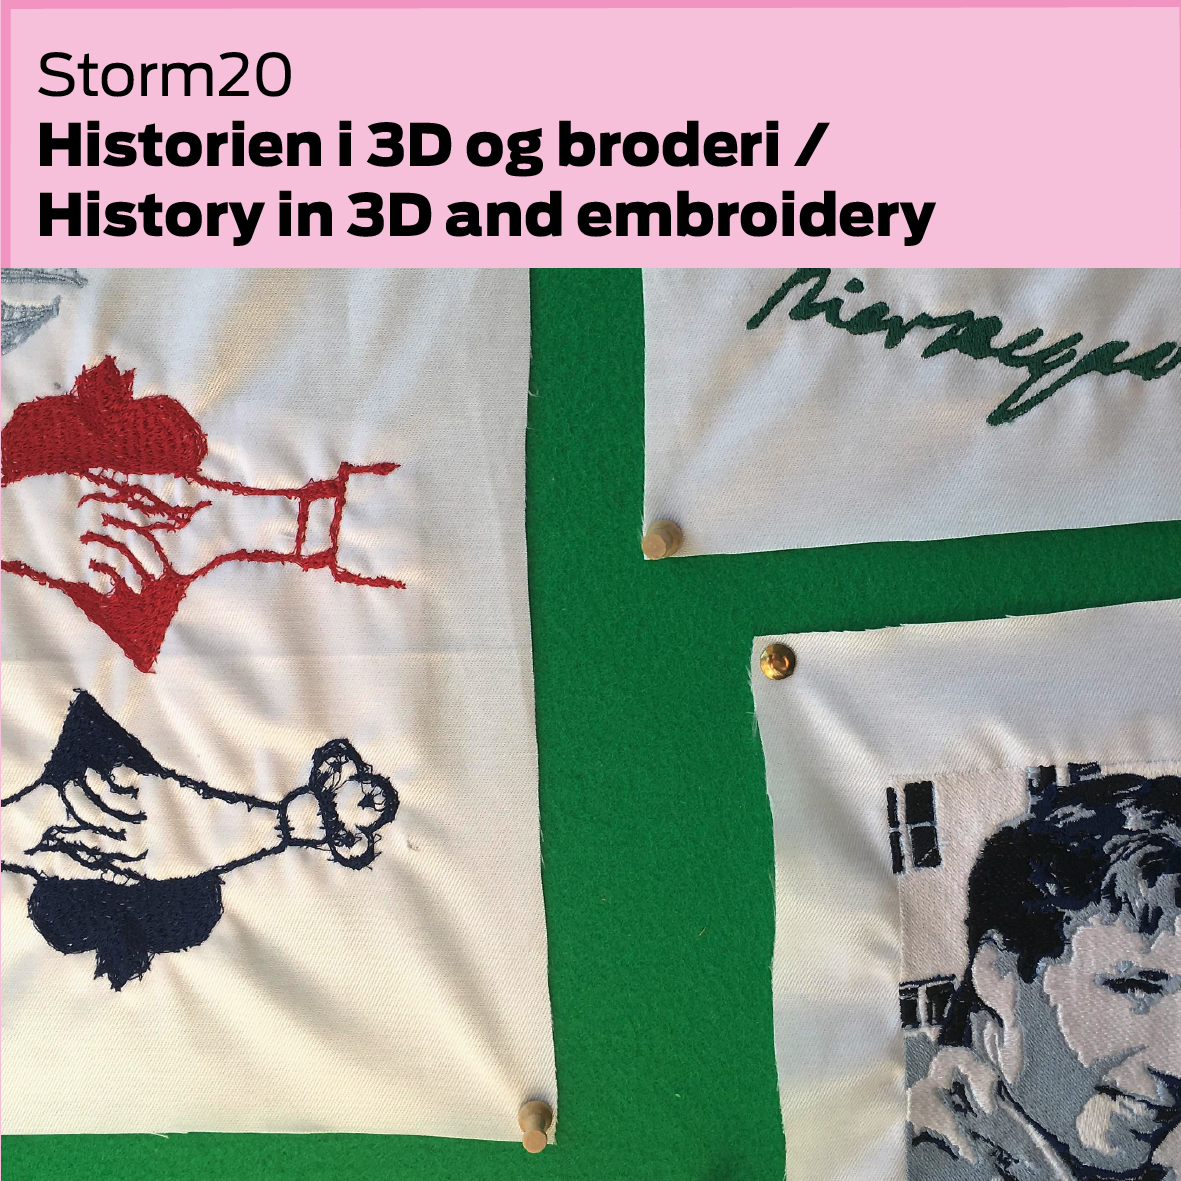 Storm20 (DK): Historien i 3D og broderi / History in 3D and embroidery